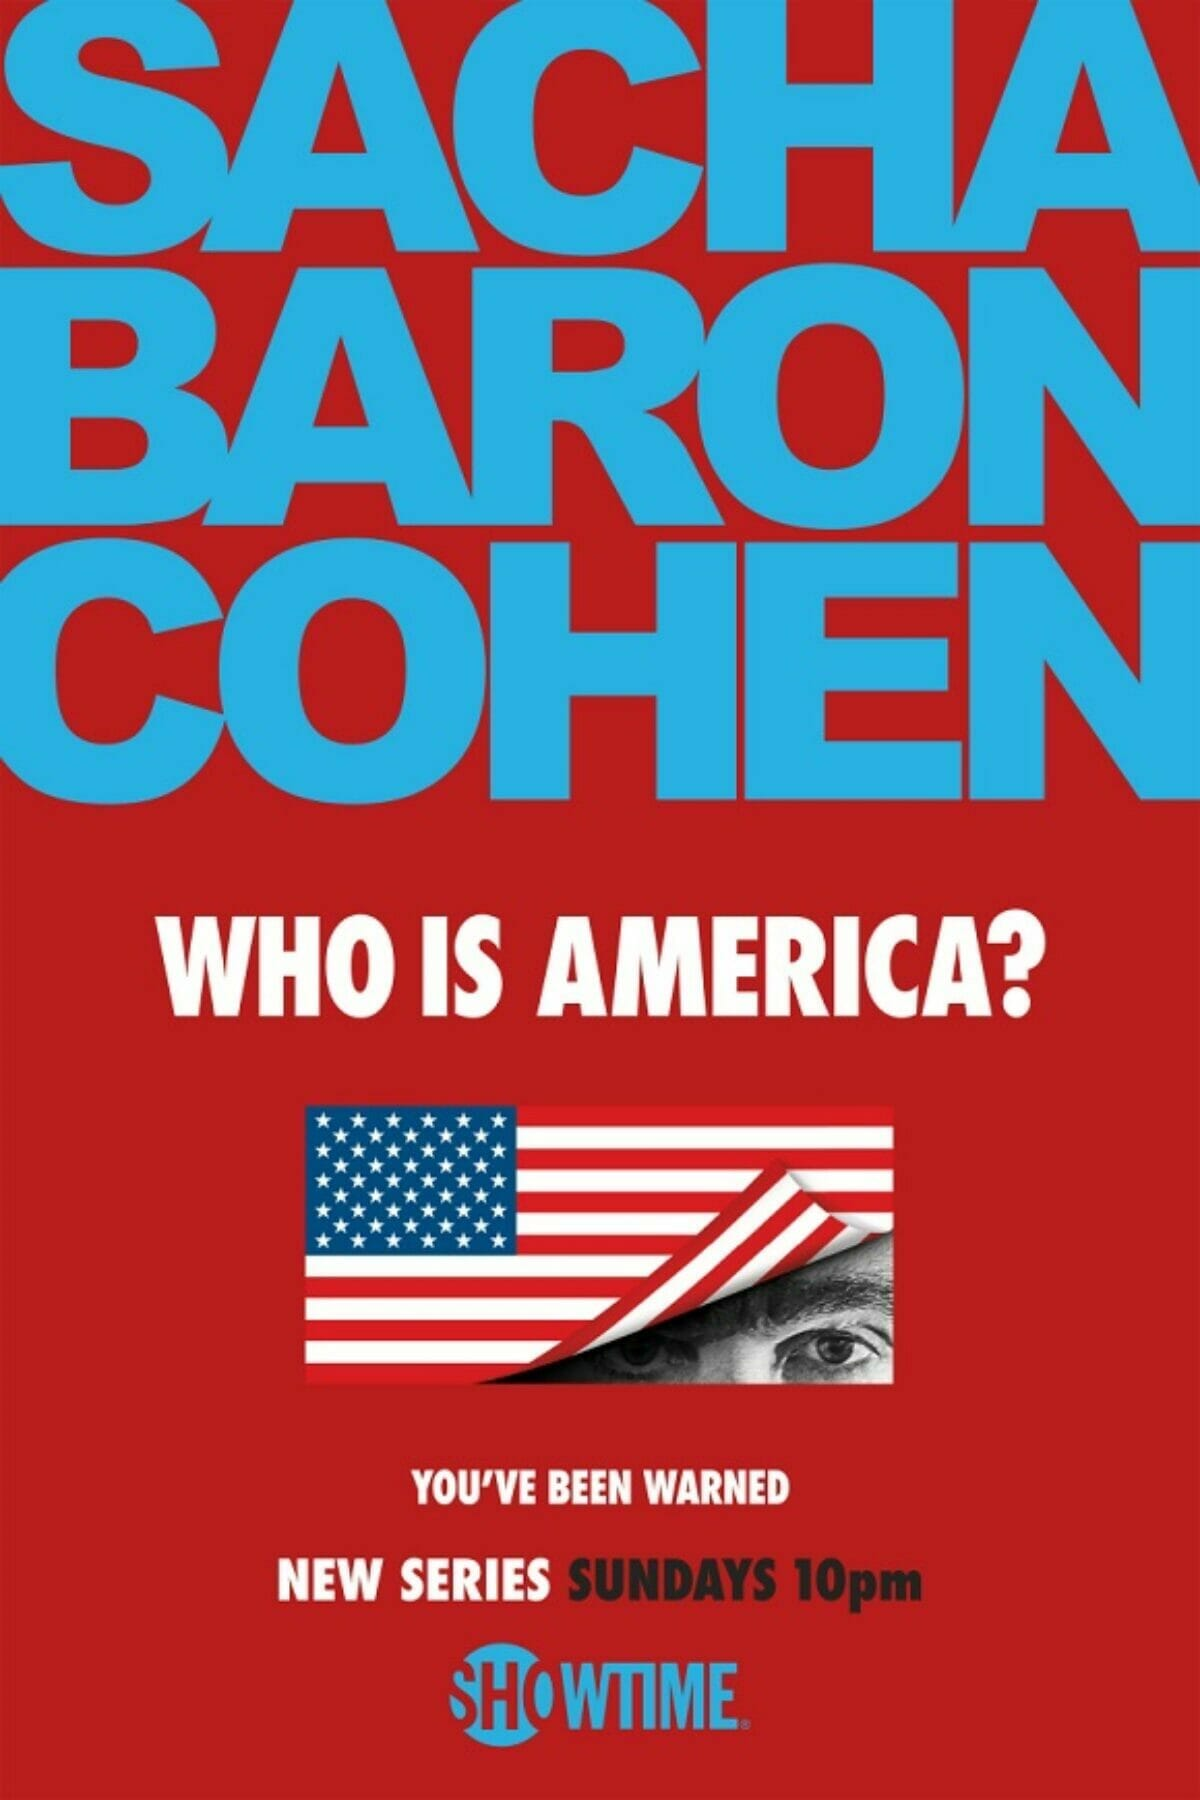 Who-is-america-poster.